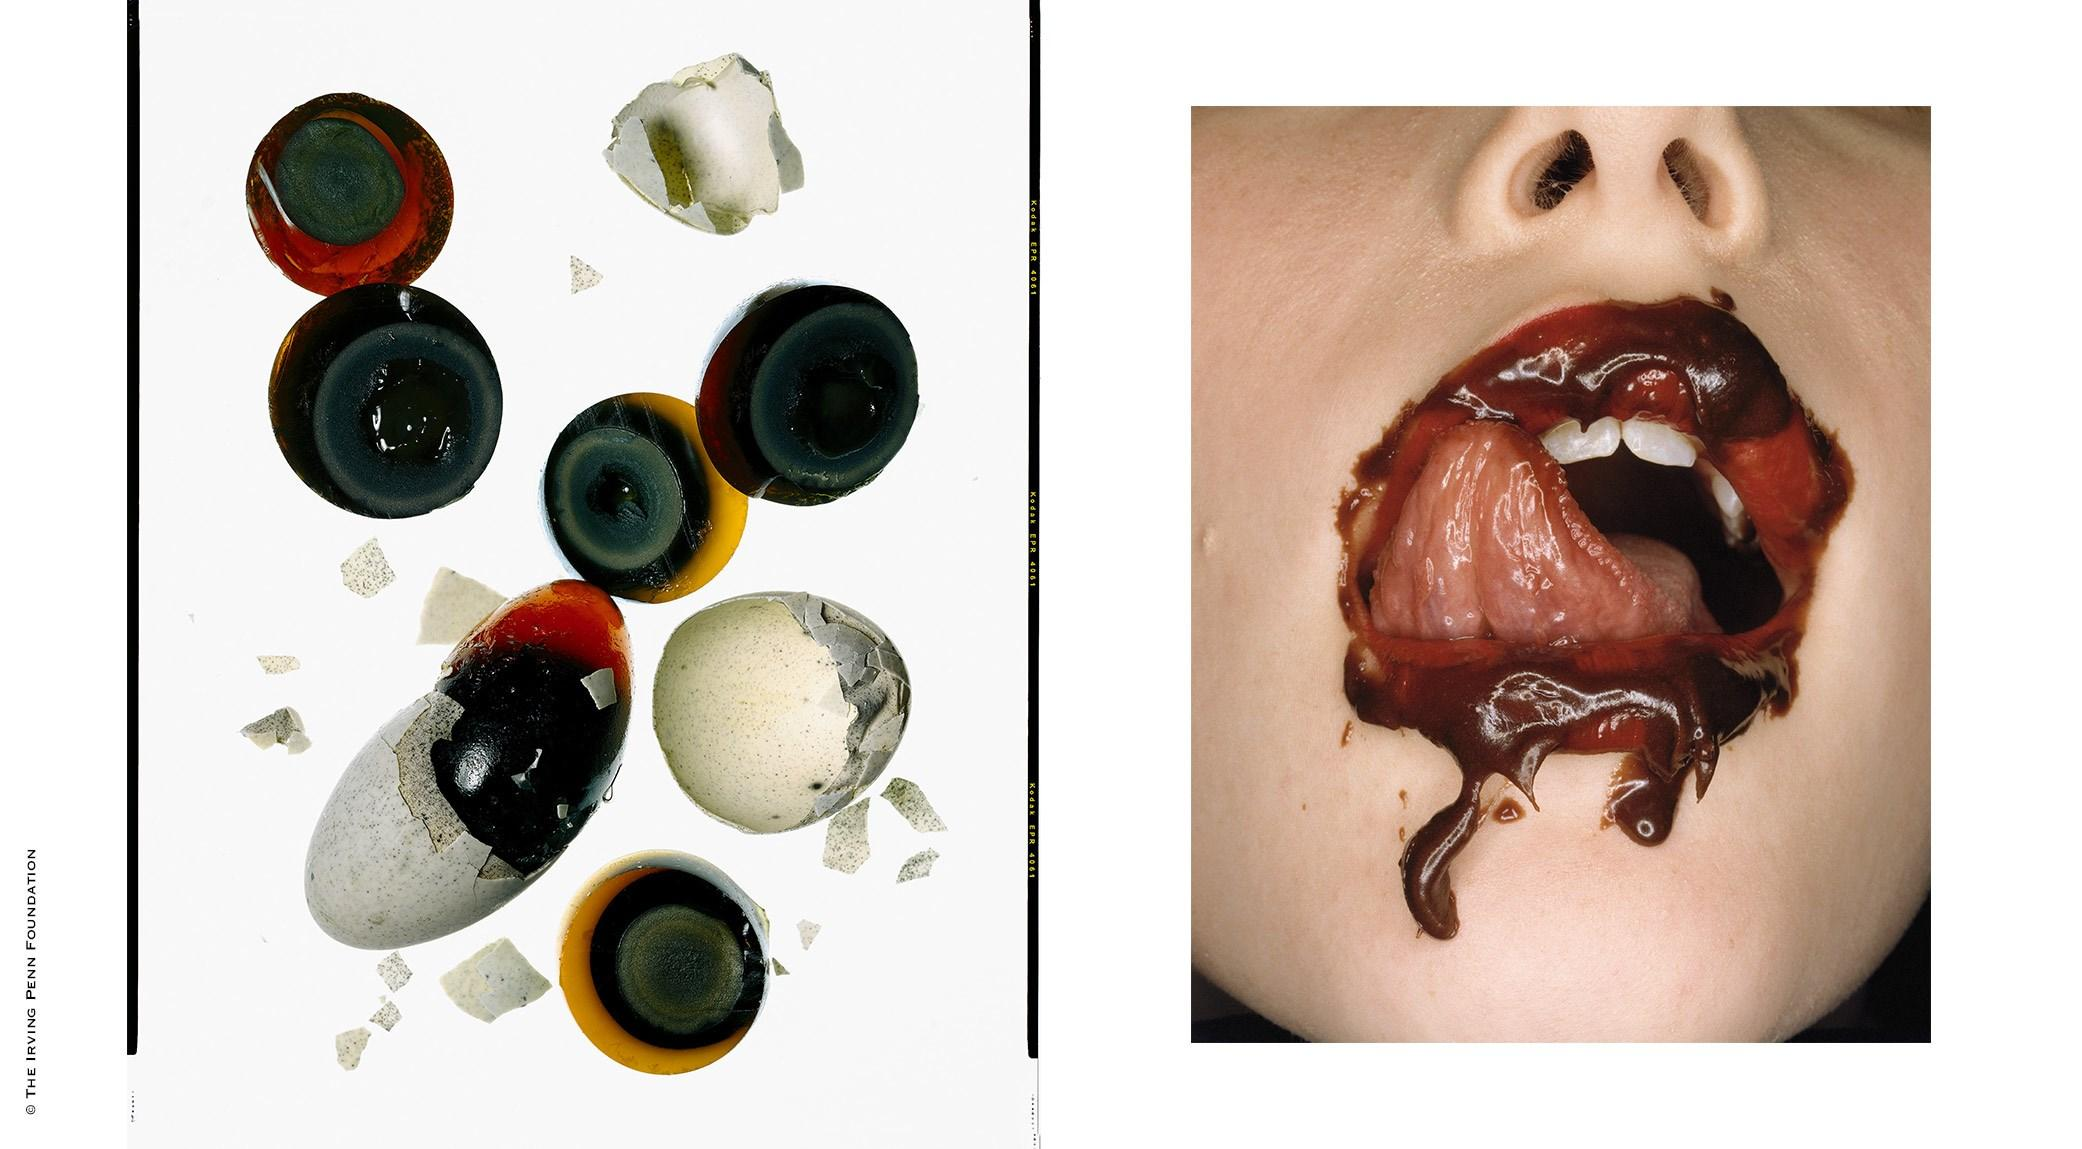 Irving Penn, Thousand-Year-Old Egg | Irving Penn, Chocolate Mouth